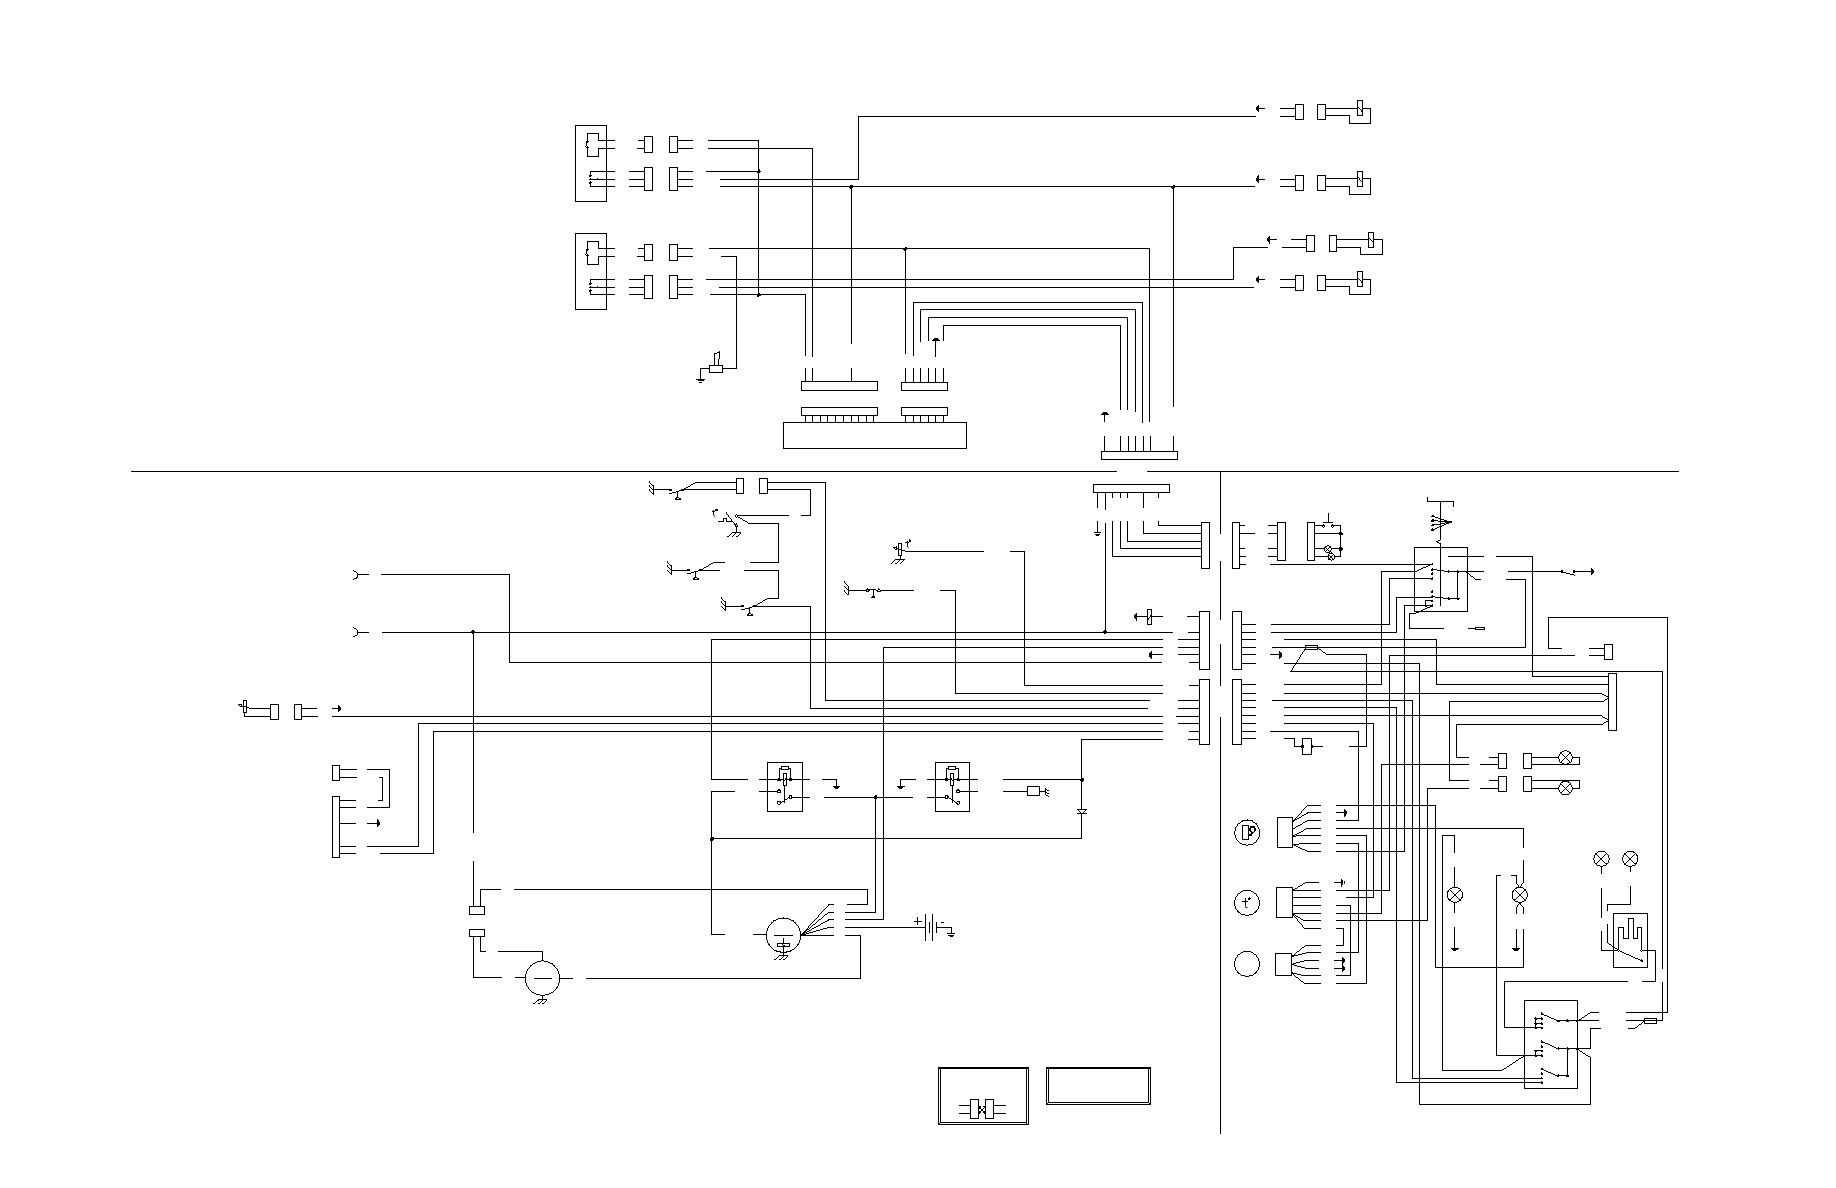 bobcat 853 wiring schematic loader bobcat 853  853h manual part 47  loader bobcat 853  853h manual part 47